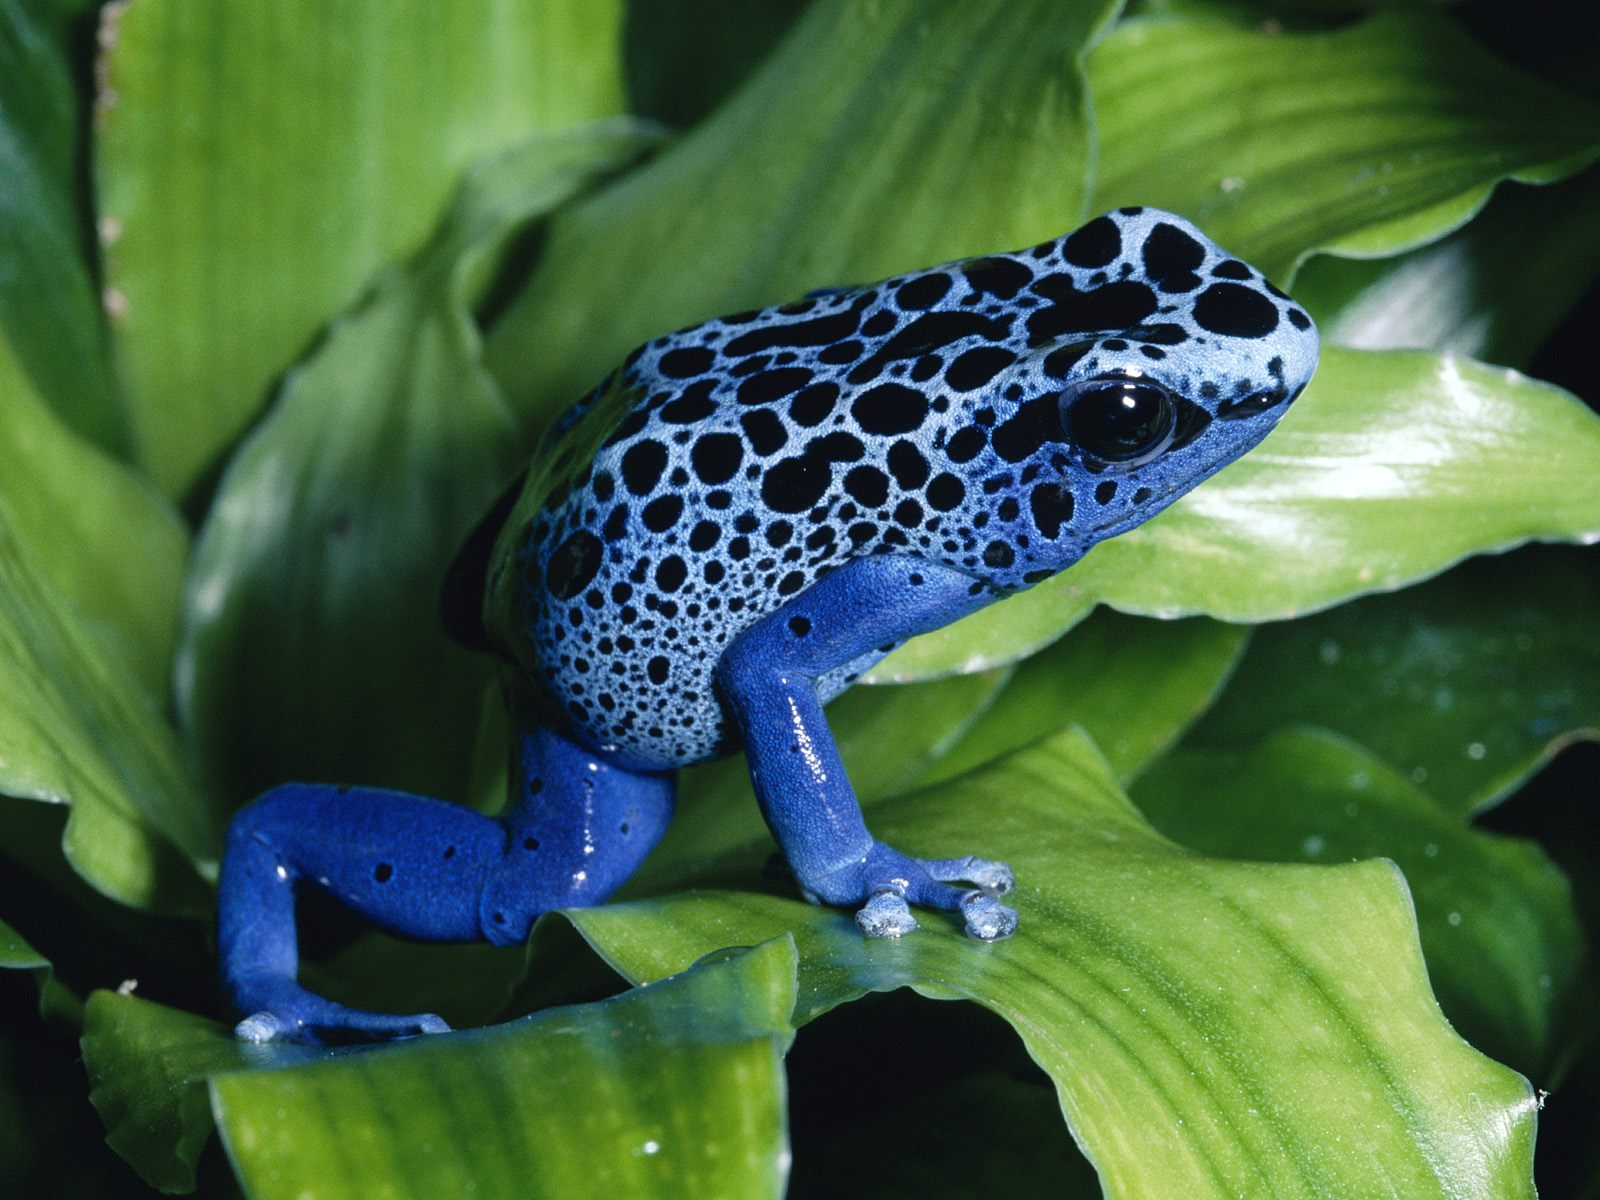 jaguar dan leopard with Amazing Poison Dart Frog Poison Frog on Liger Tiger Lion also Bengal Tiger together with E8 B1 B9 E5 AD 90 E5 9B BE E7 89 87 E5 A4 A7 E5 85 A8 together with South African Leopard in addition Tigre Vs Leao Atualizado Fatos Reais.